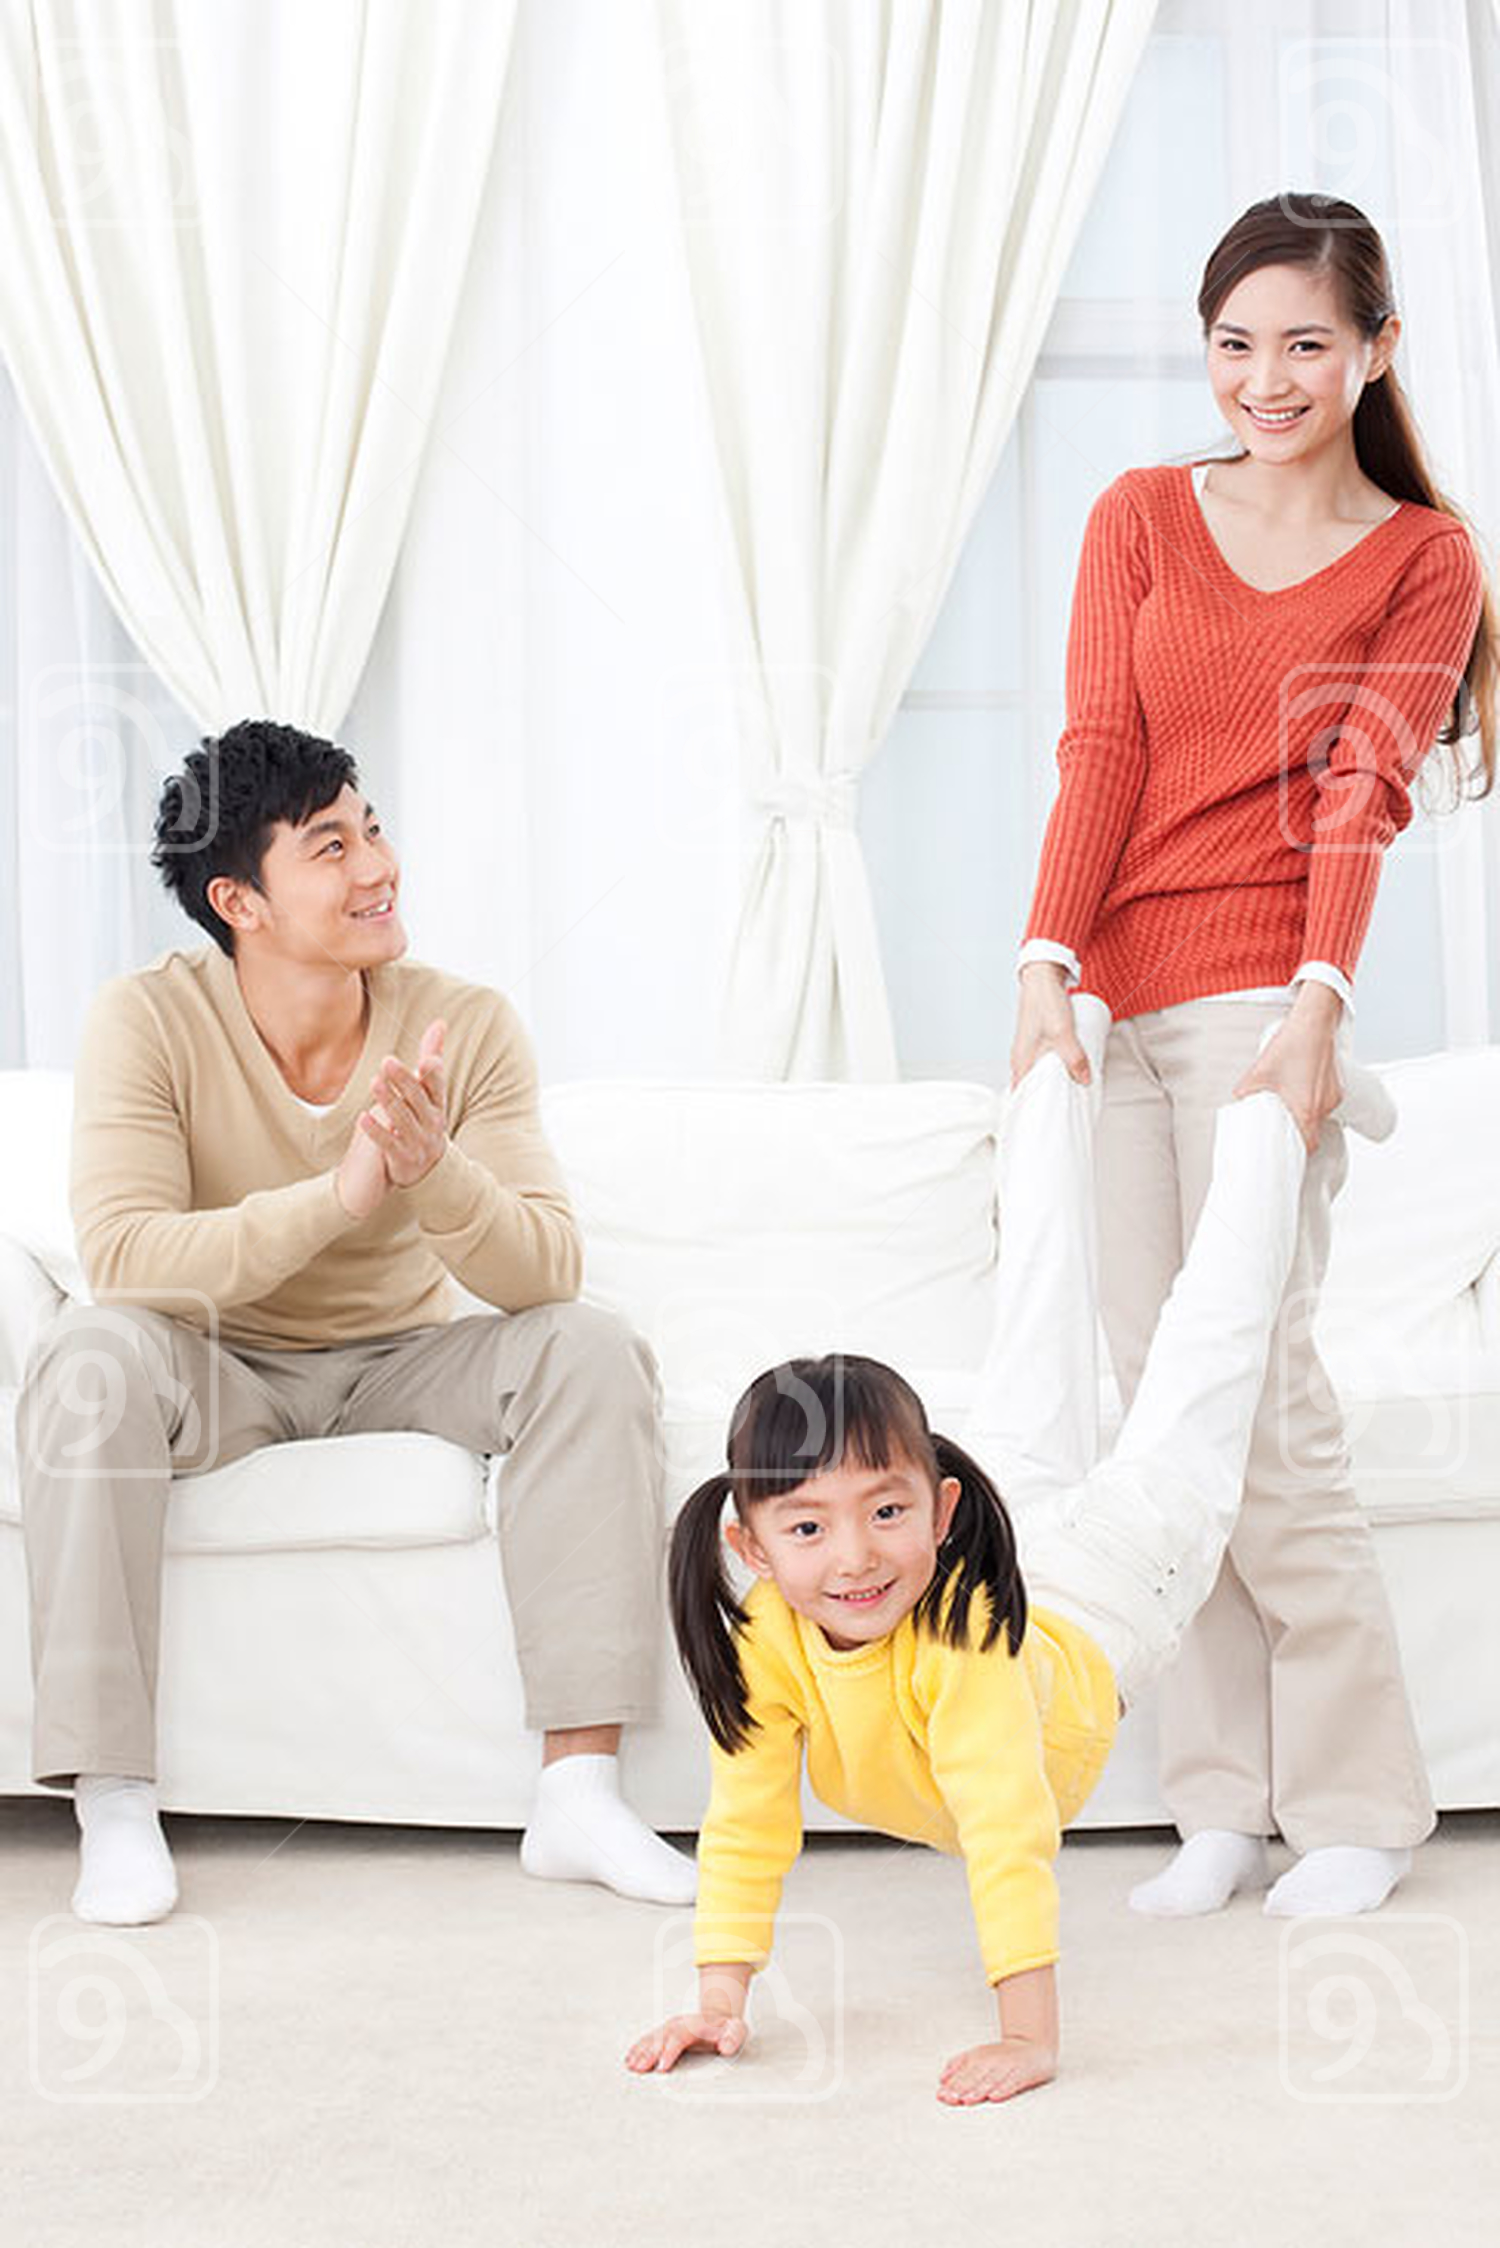 Chinese family having fun together